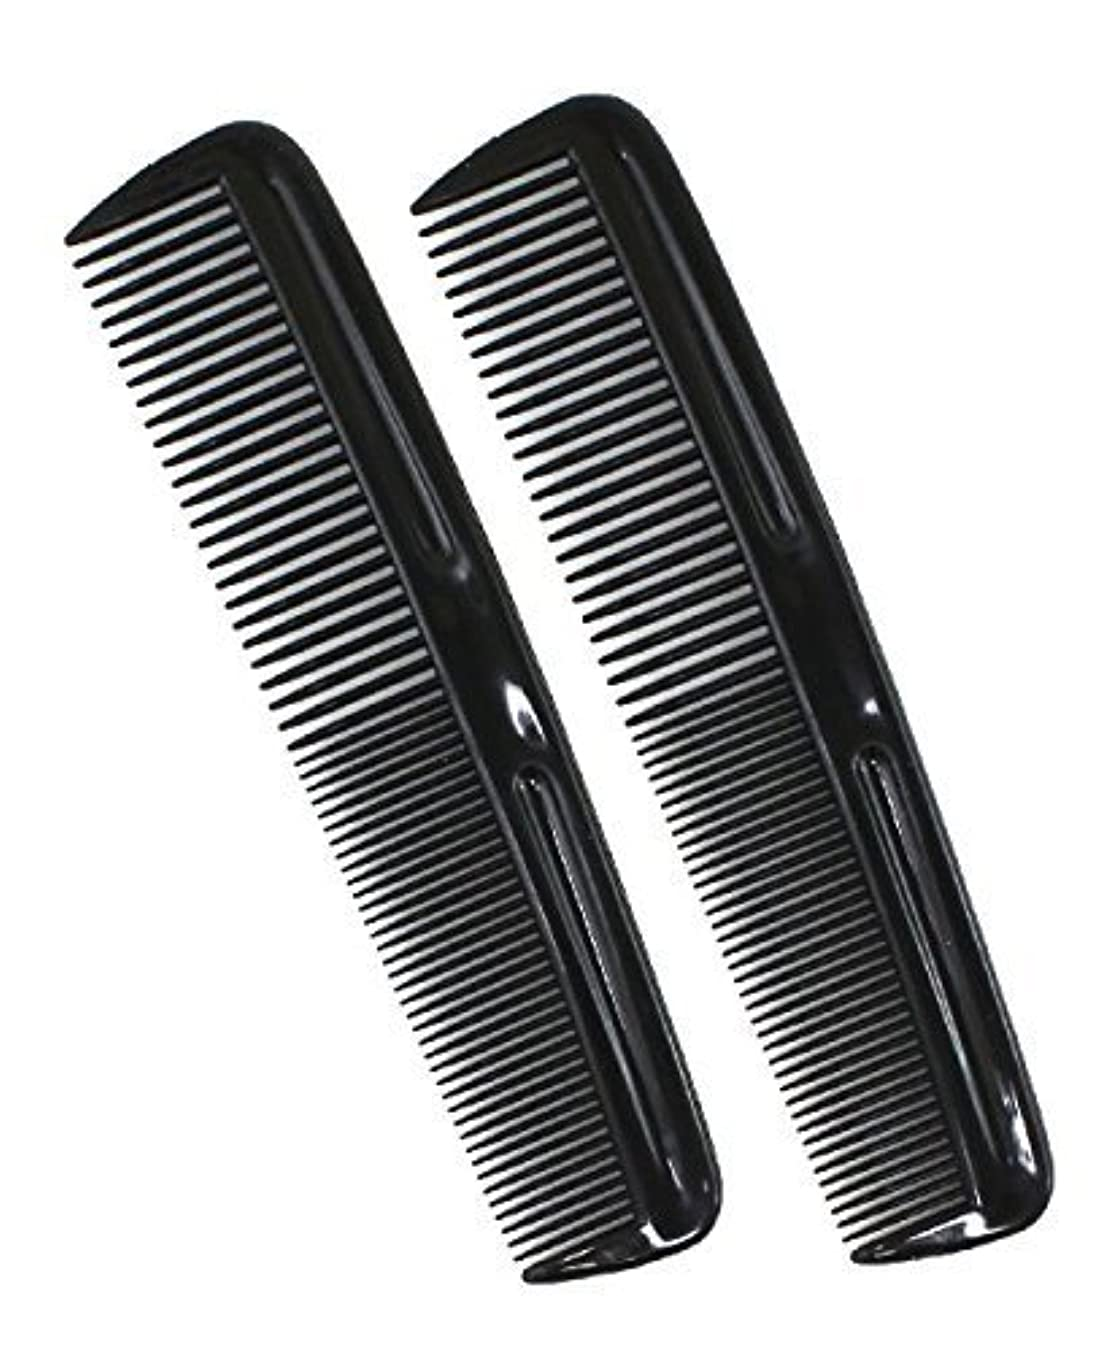 Hair Care 12-Pack Comb - Not Breakable [並行輸入品]